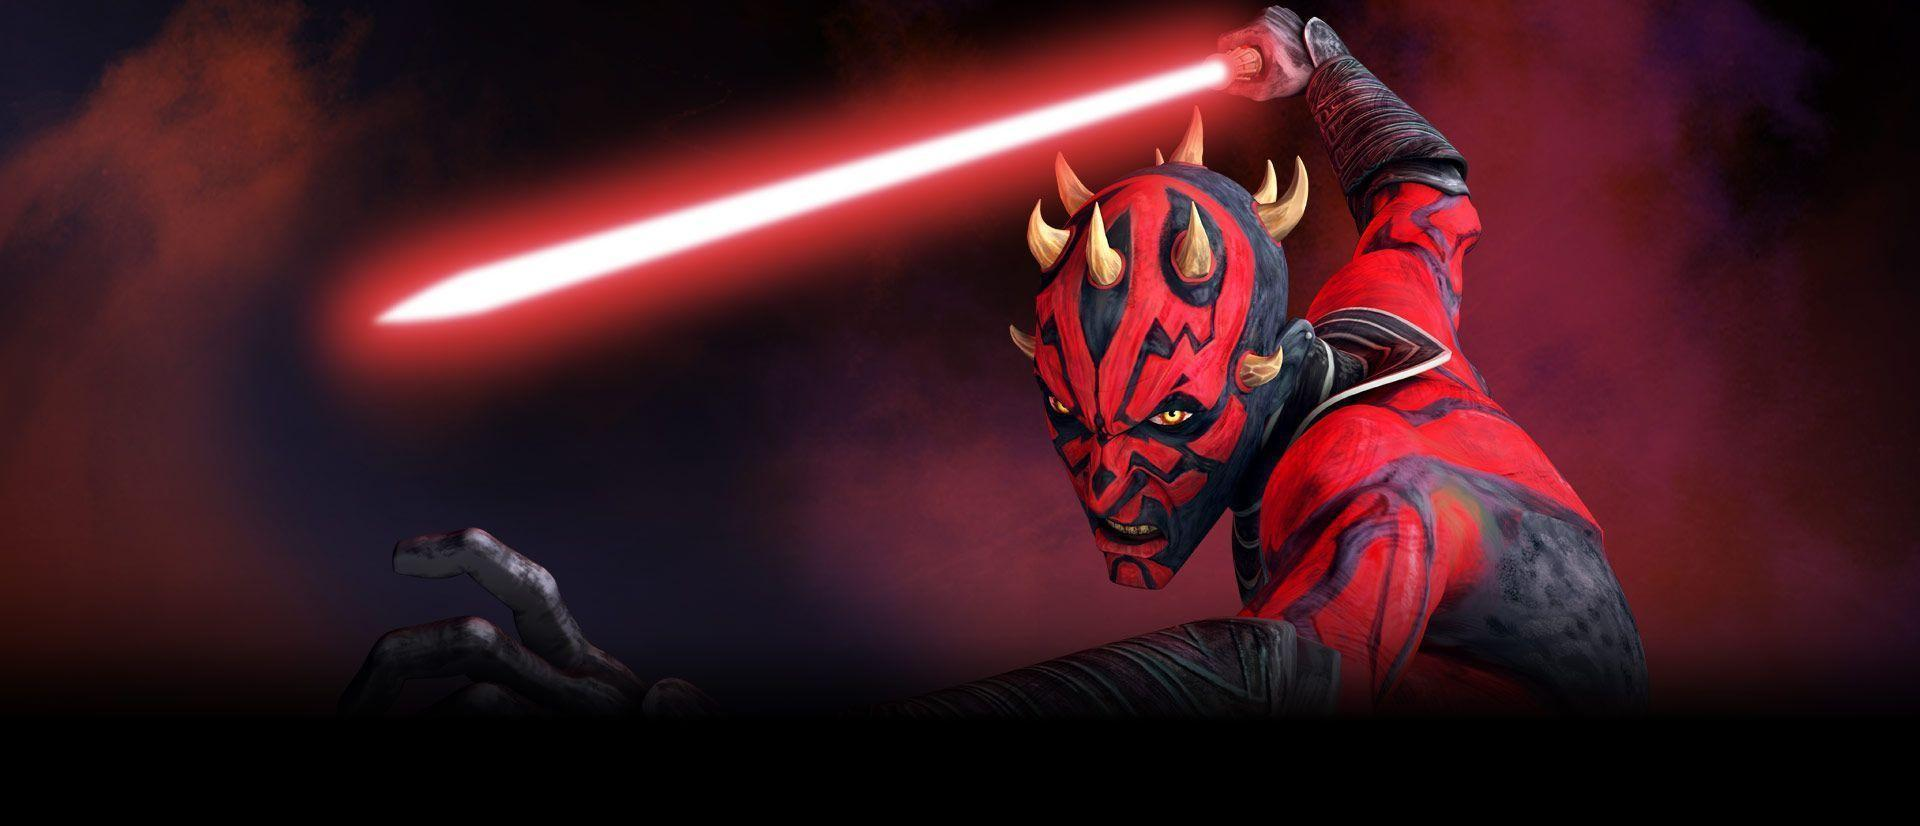 Darth Maul Wallpapers Wallpaper Cave